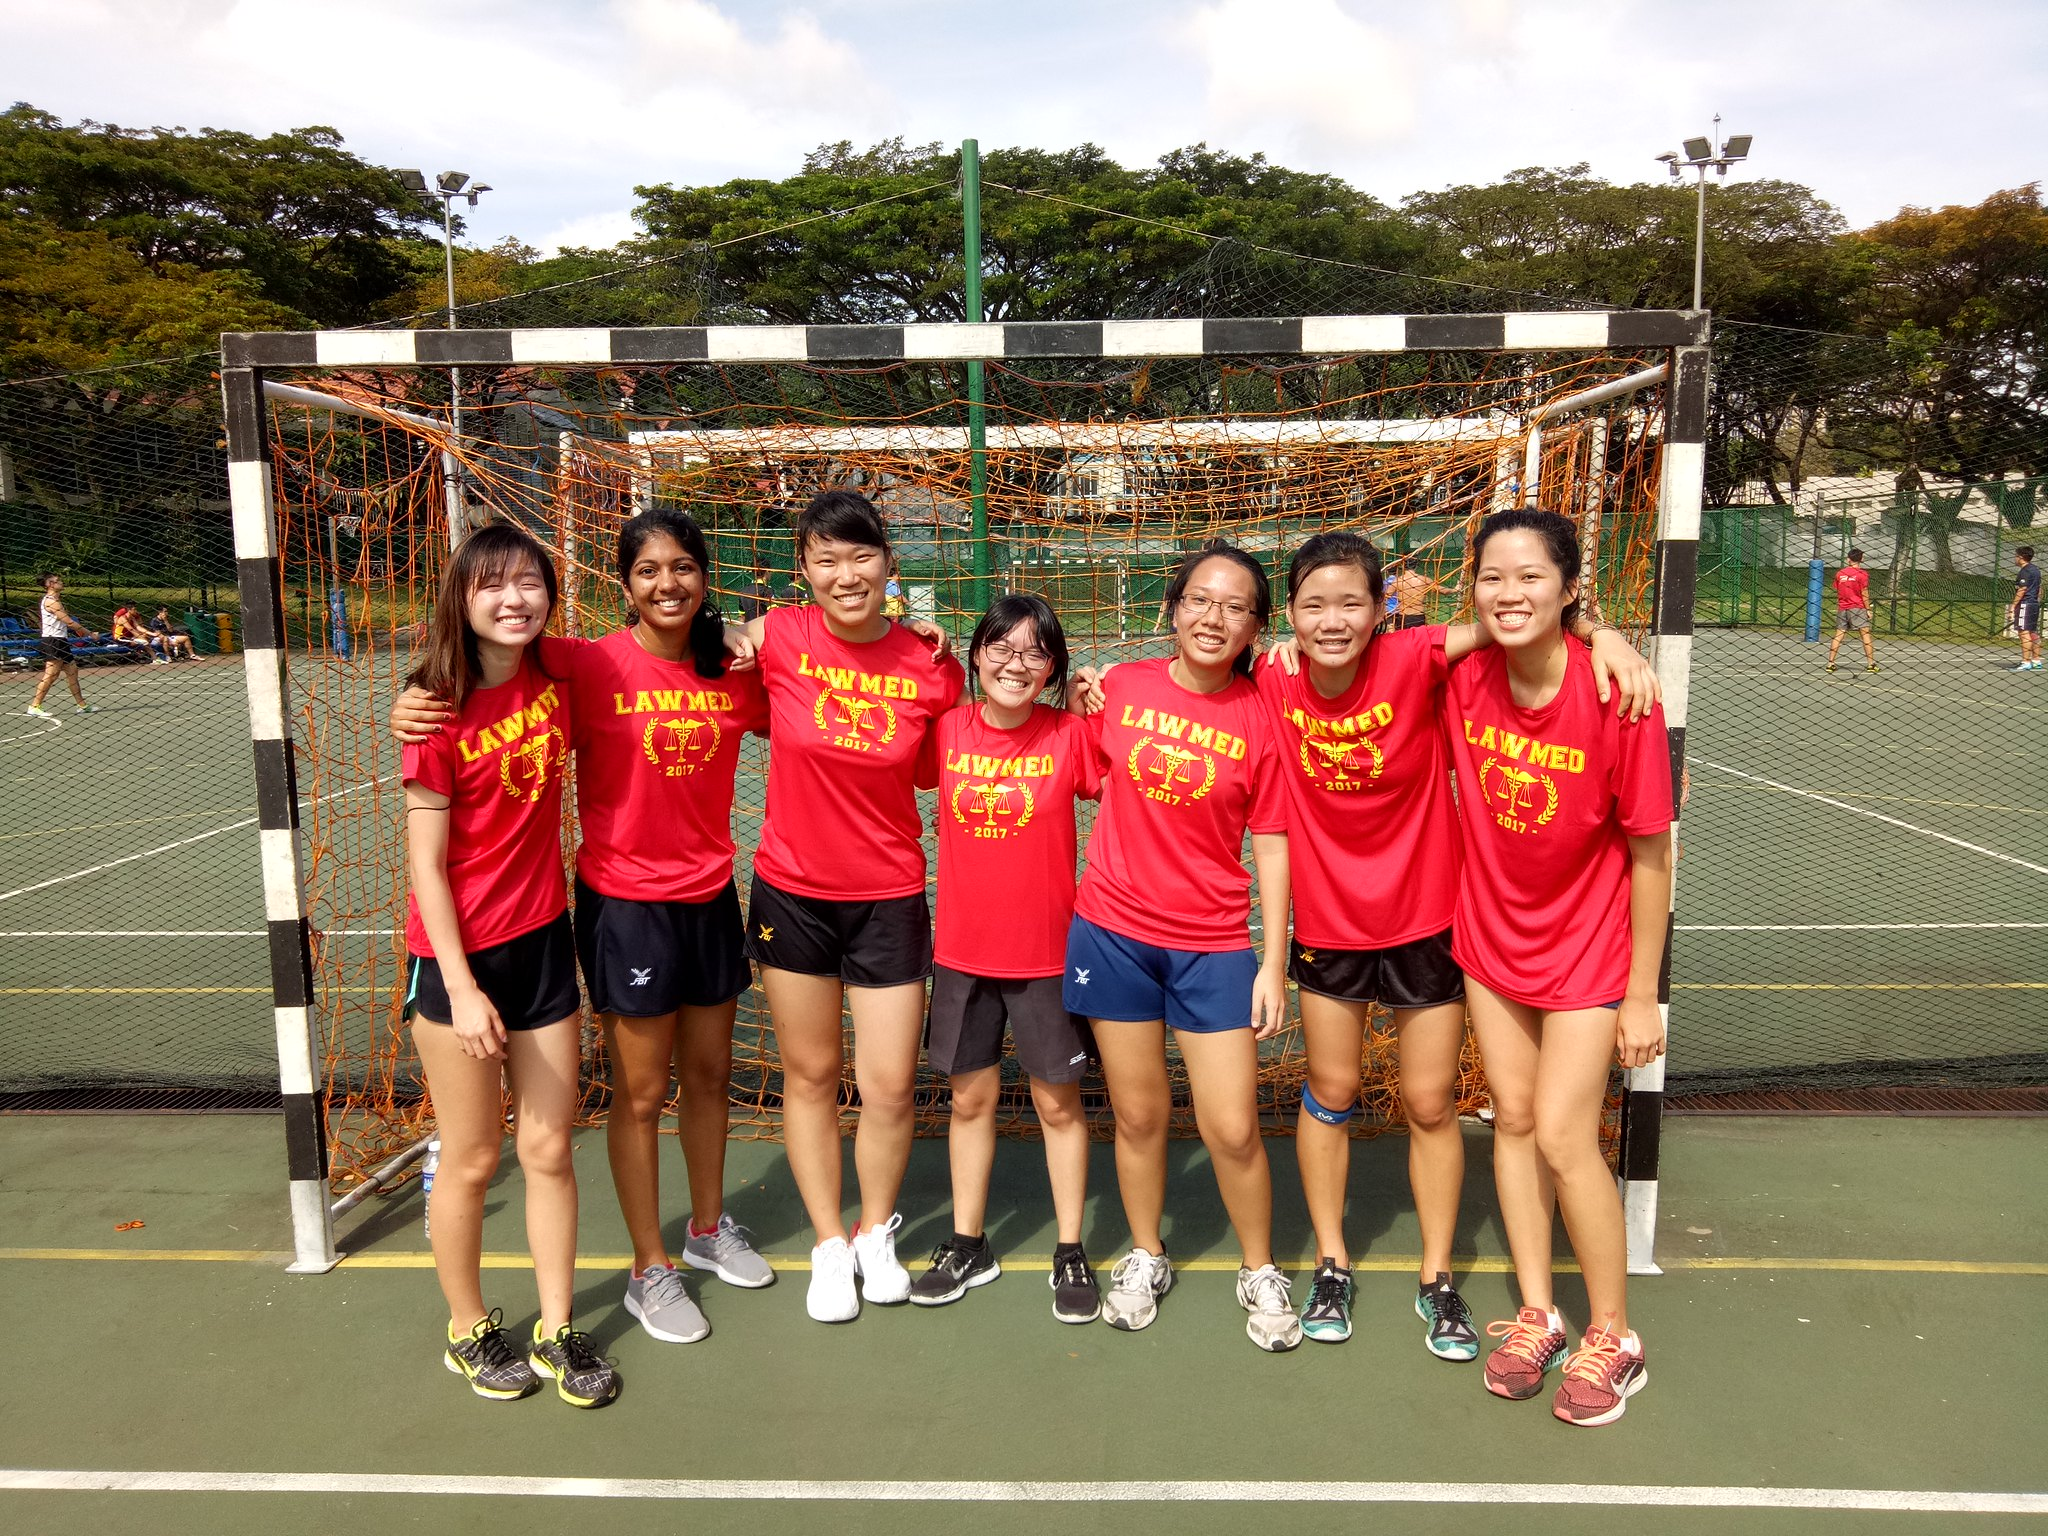 (from left) Zheng Fan, Sumedha, Yufei, Carmen, Yuxin, Joelle, Joan